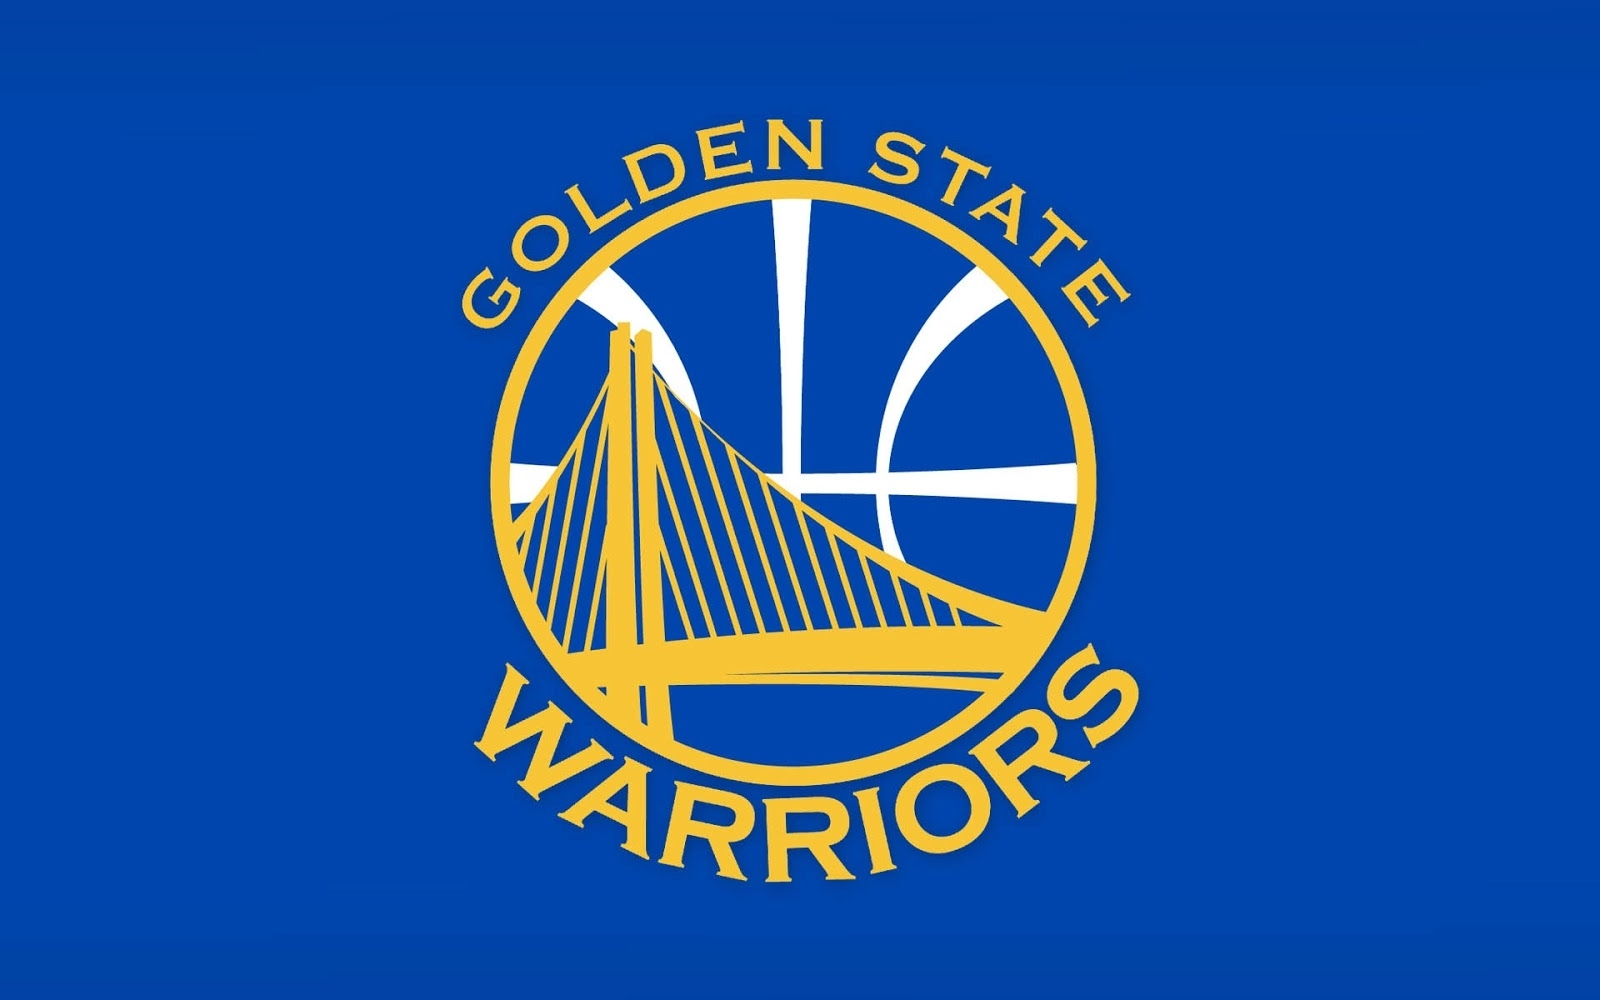 golden state warriors logo -logo brands for free hd 3d